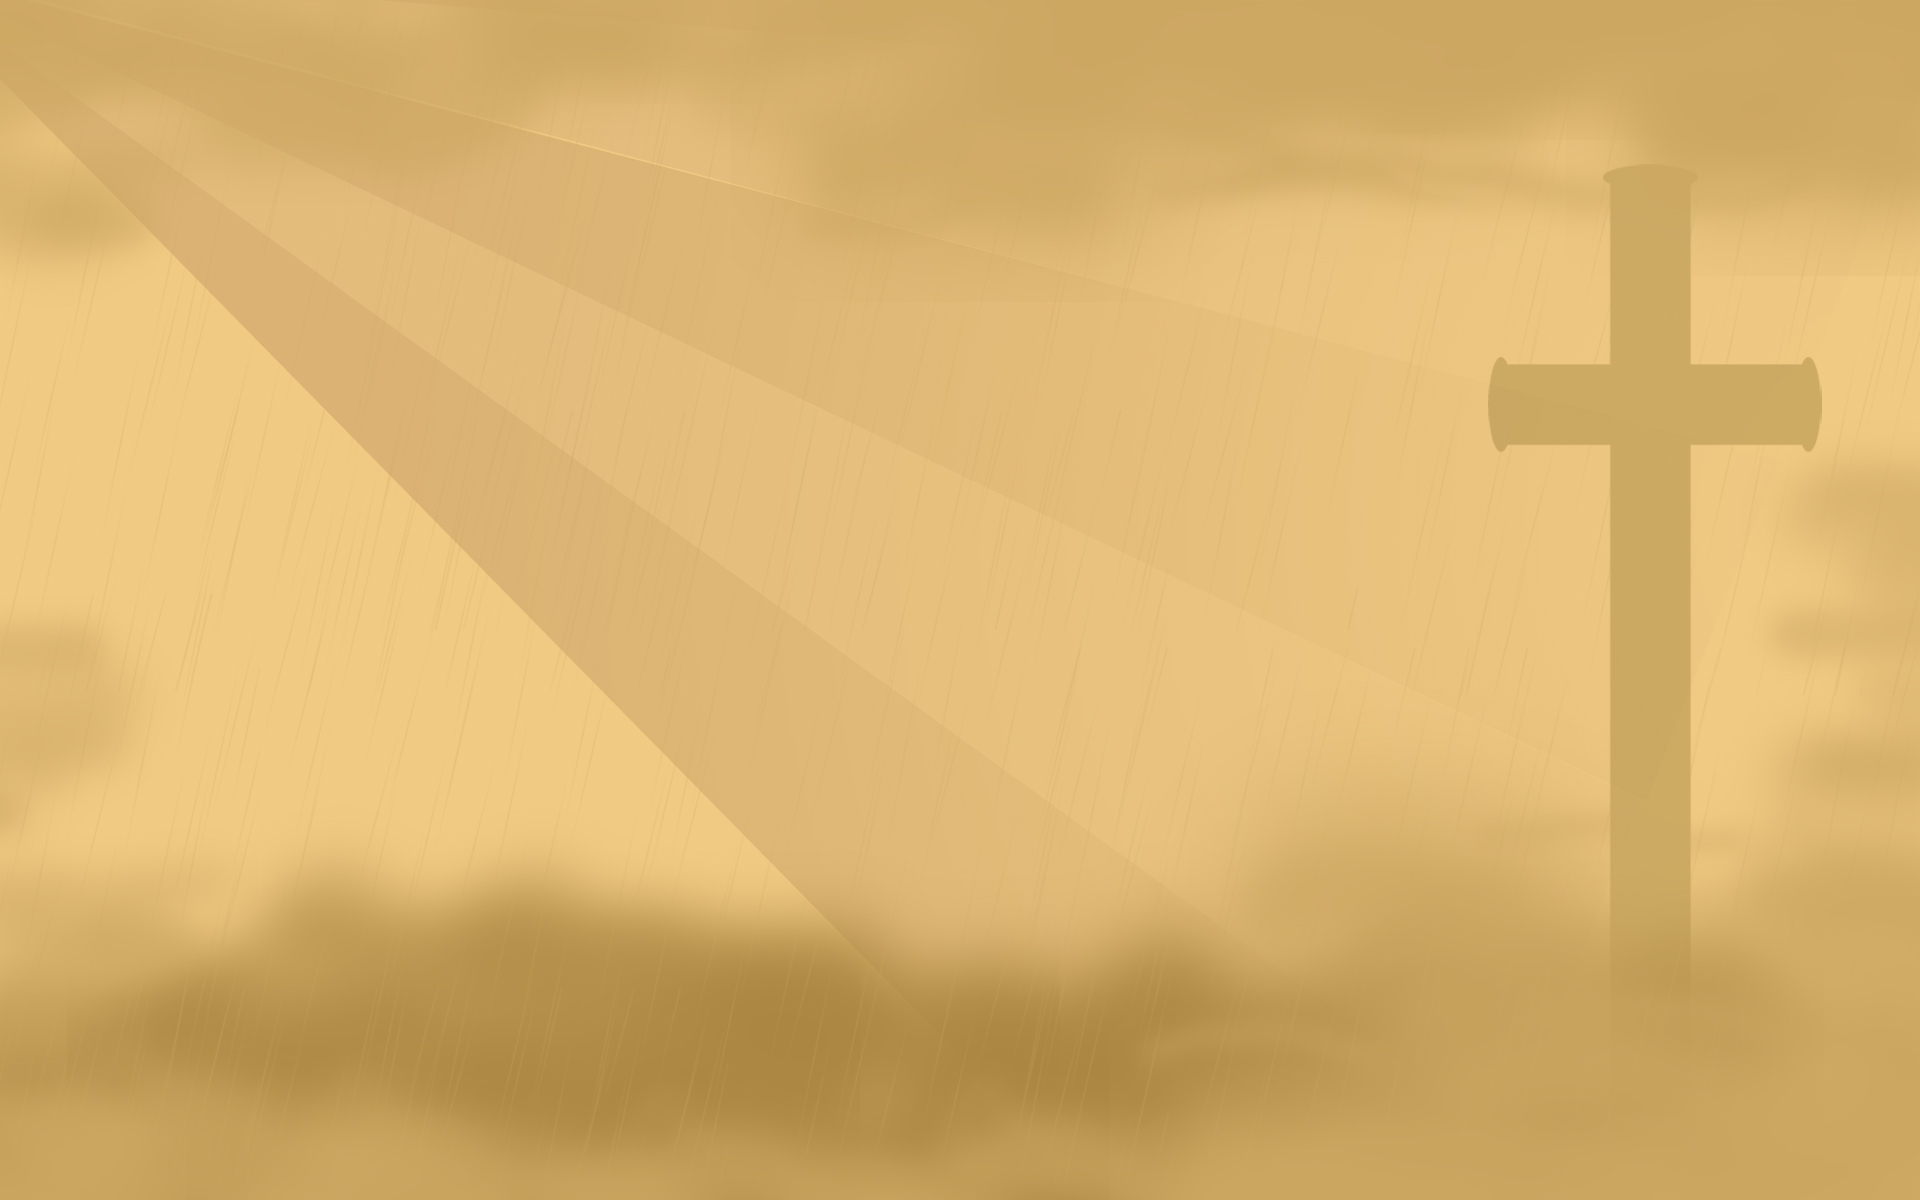 PowerPoint Background   The Cross   Templates 1920x1200